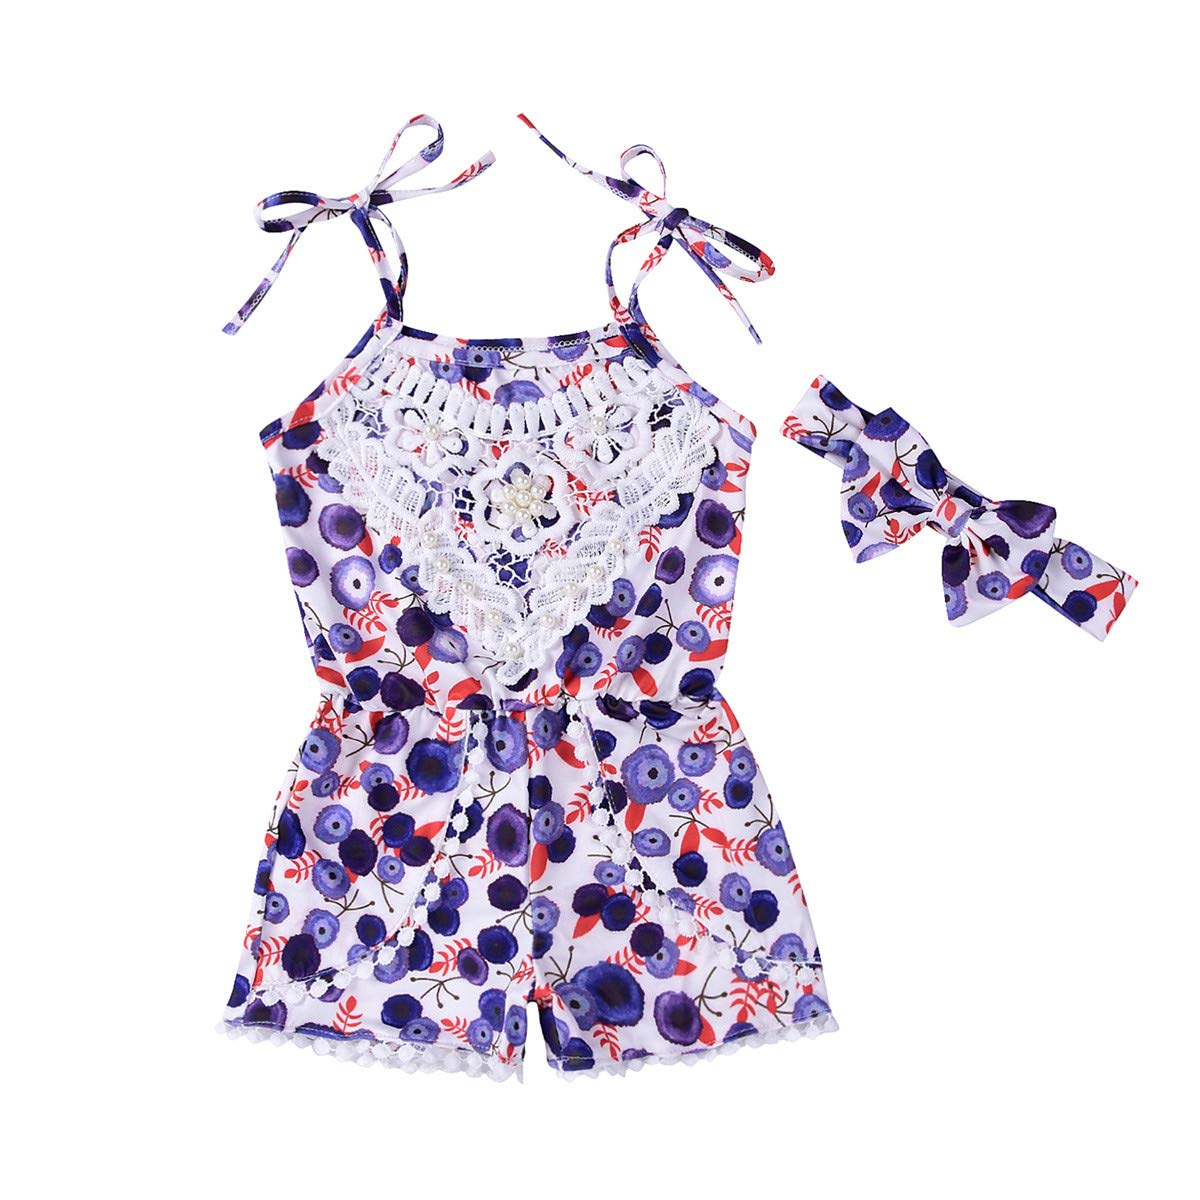 Lace Baby Girls Romper Blueberry Prints with Pearls Decor Overall for Toddler Girls